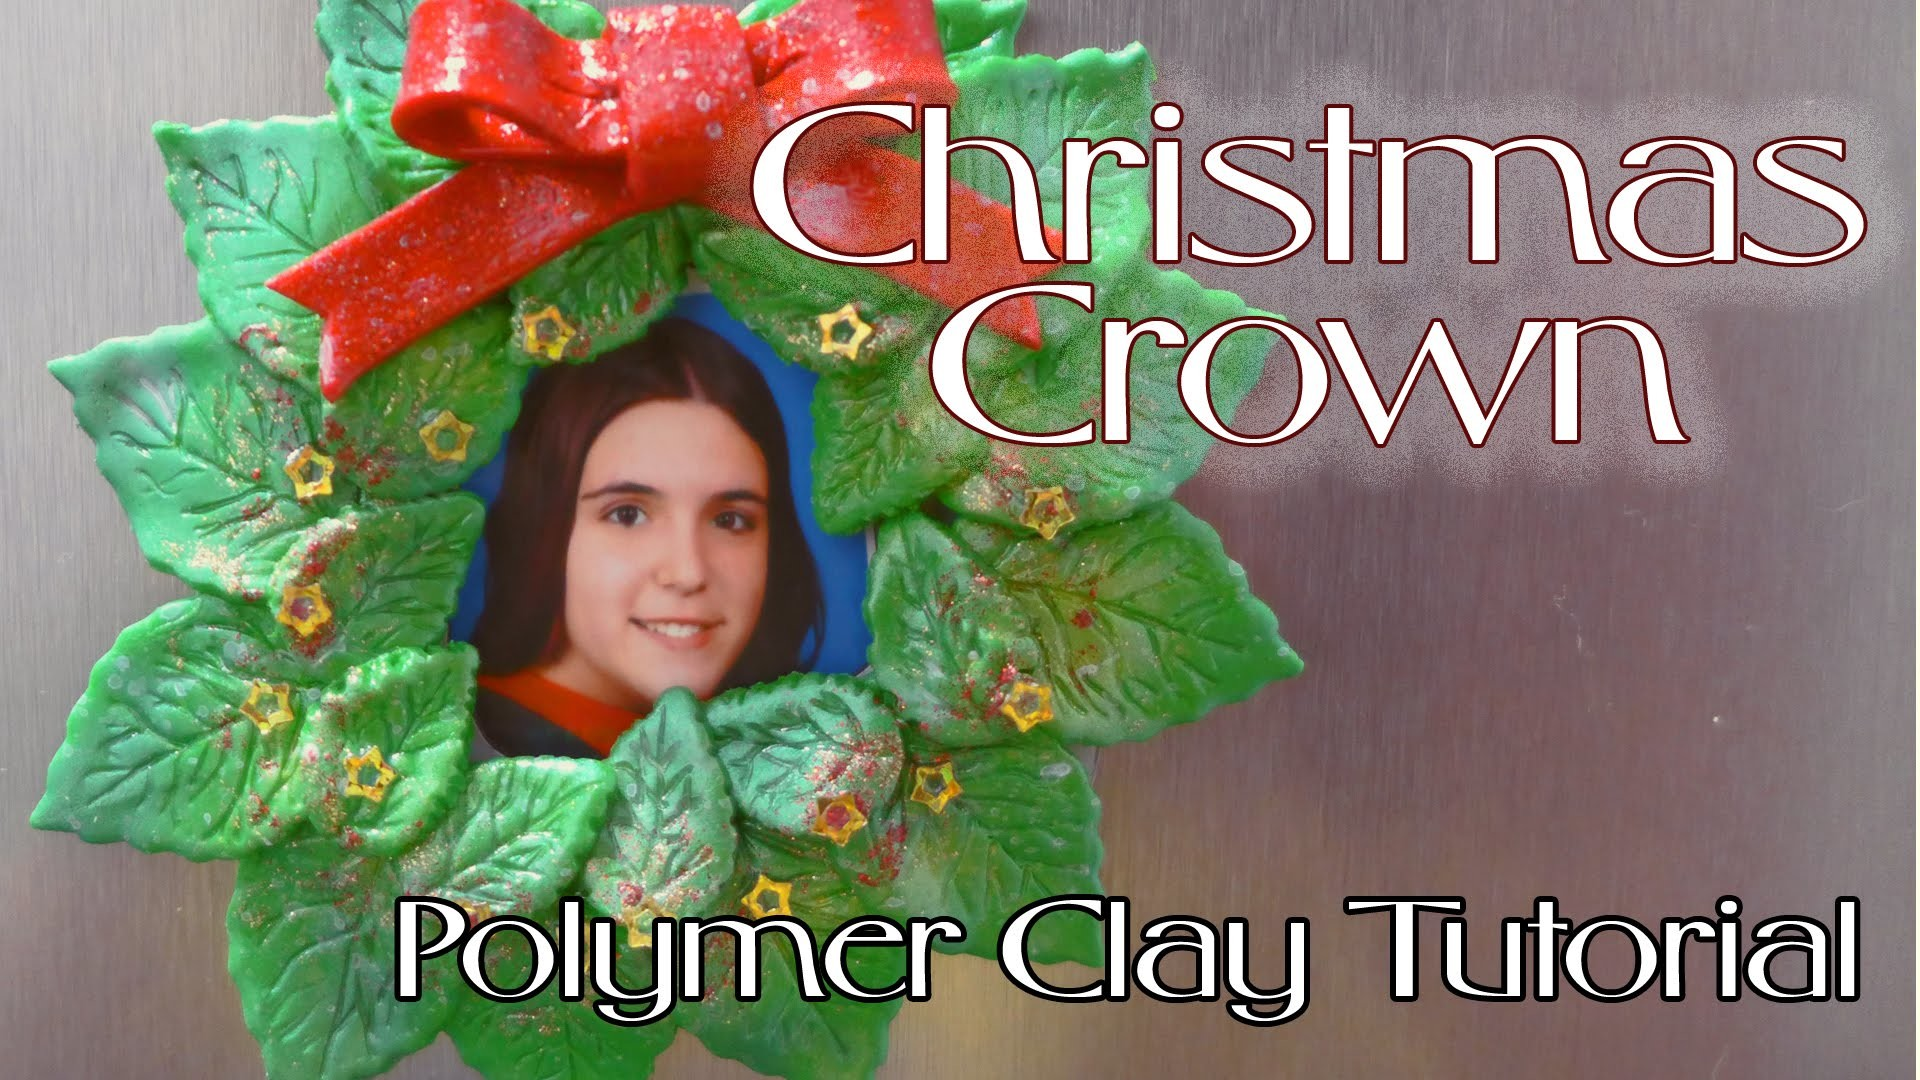 Christmas Crown (Fridge Magnet)- Polymer Clay Tutorial (Arcilla polimérica)